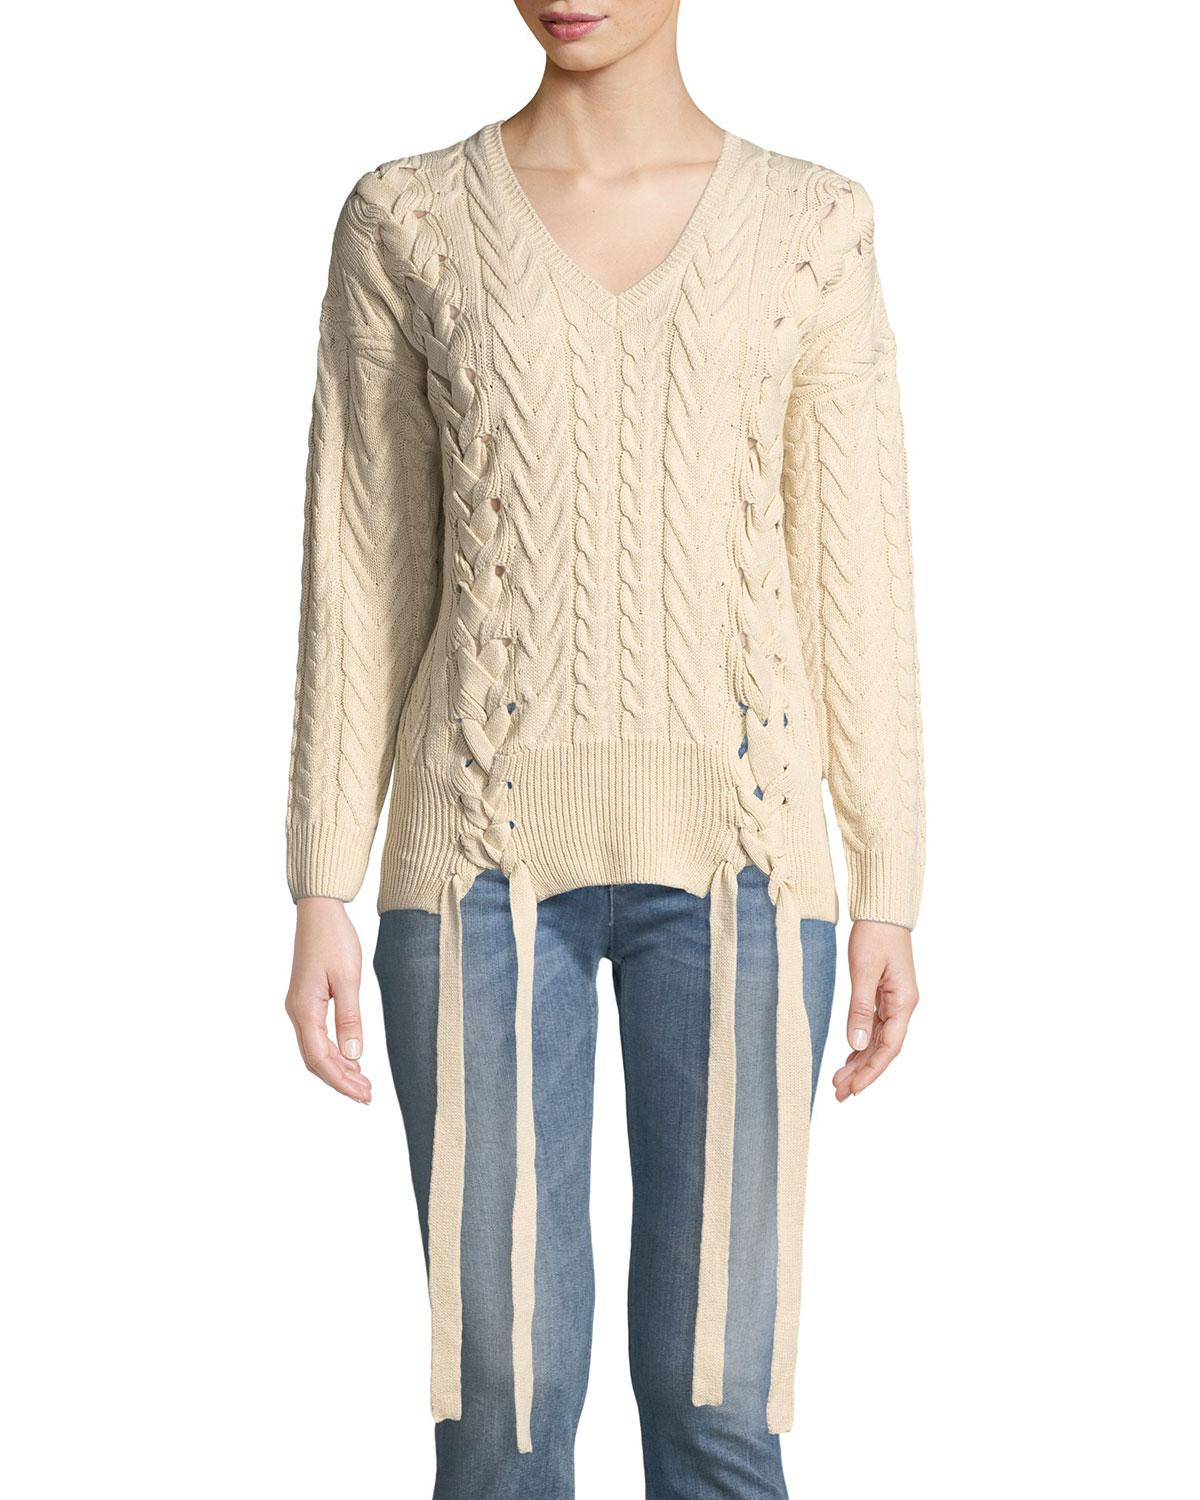 Lyst - Neiman Marcus Cable Knit Lace-up V-neck Sweater in Natural a9320e0d4